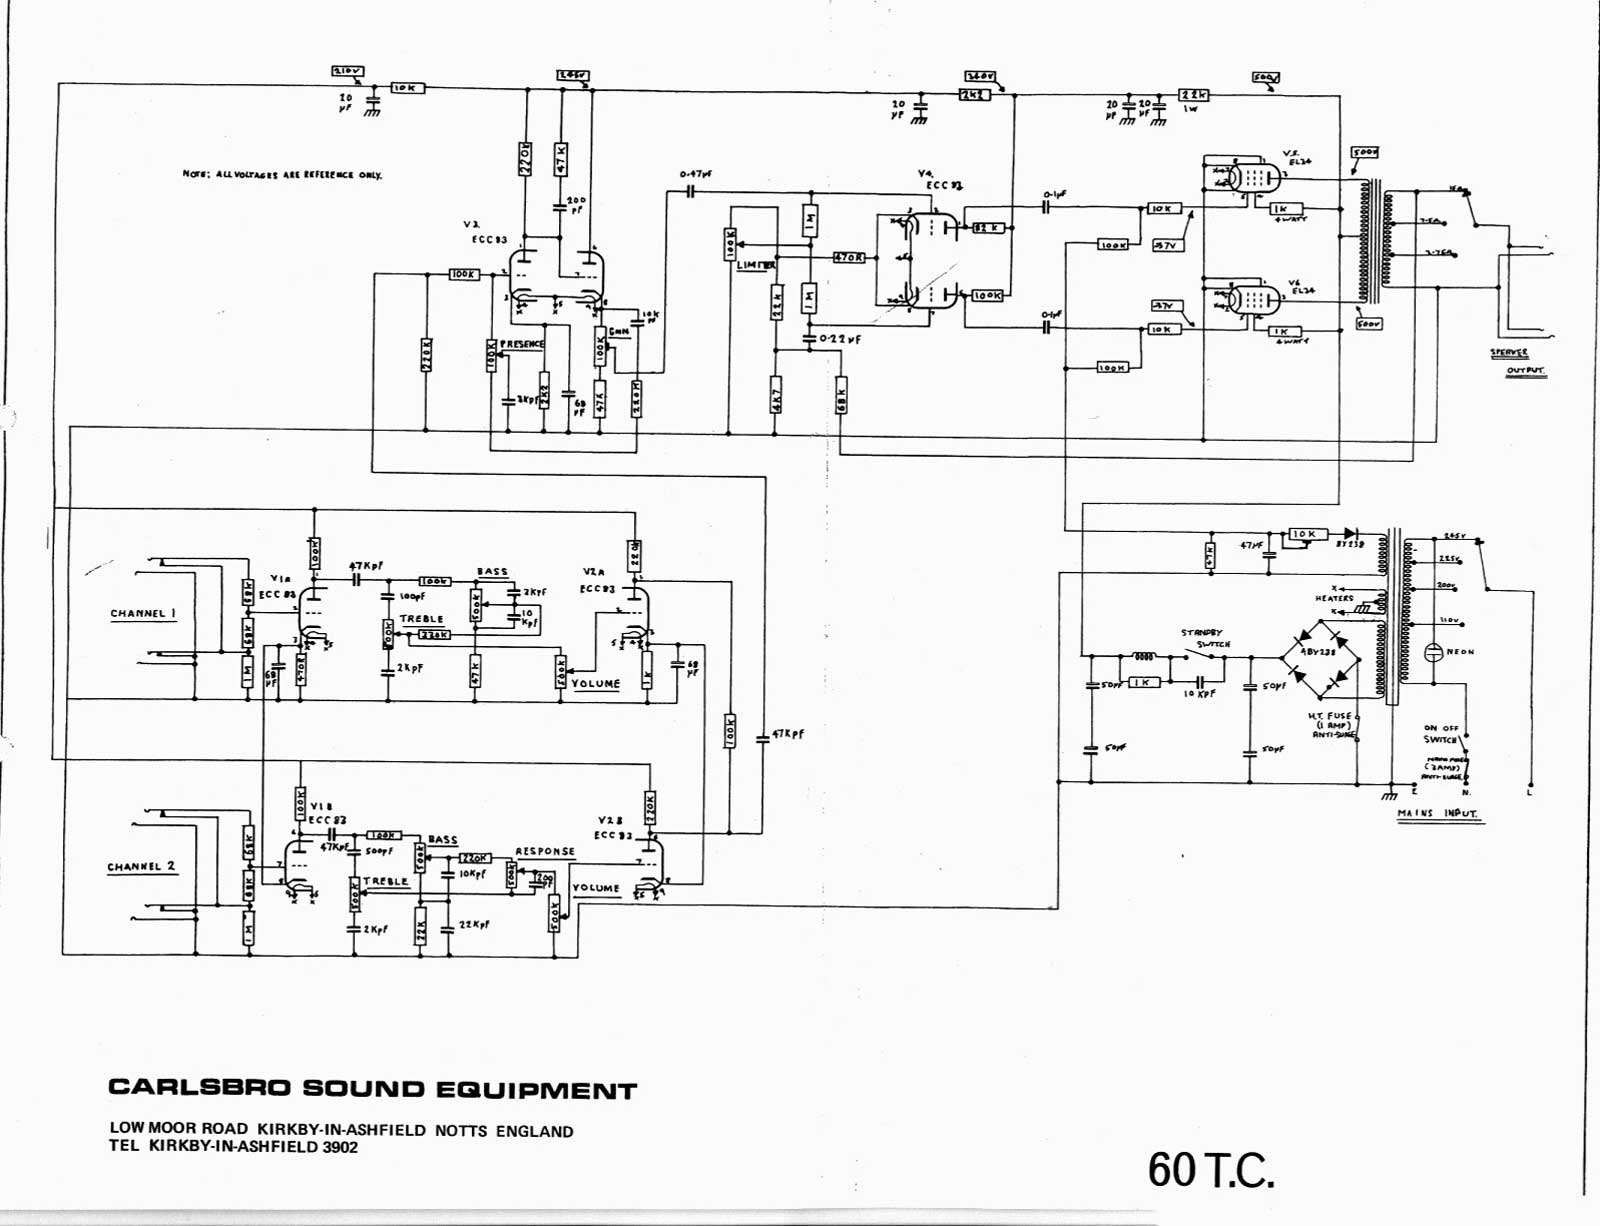 carlsbro 600 t c amp schematic rh chambonino com TC Helicon On Button Schematic Parts TC Helicon VoiceLive